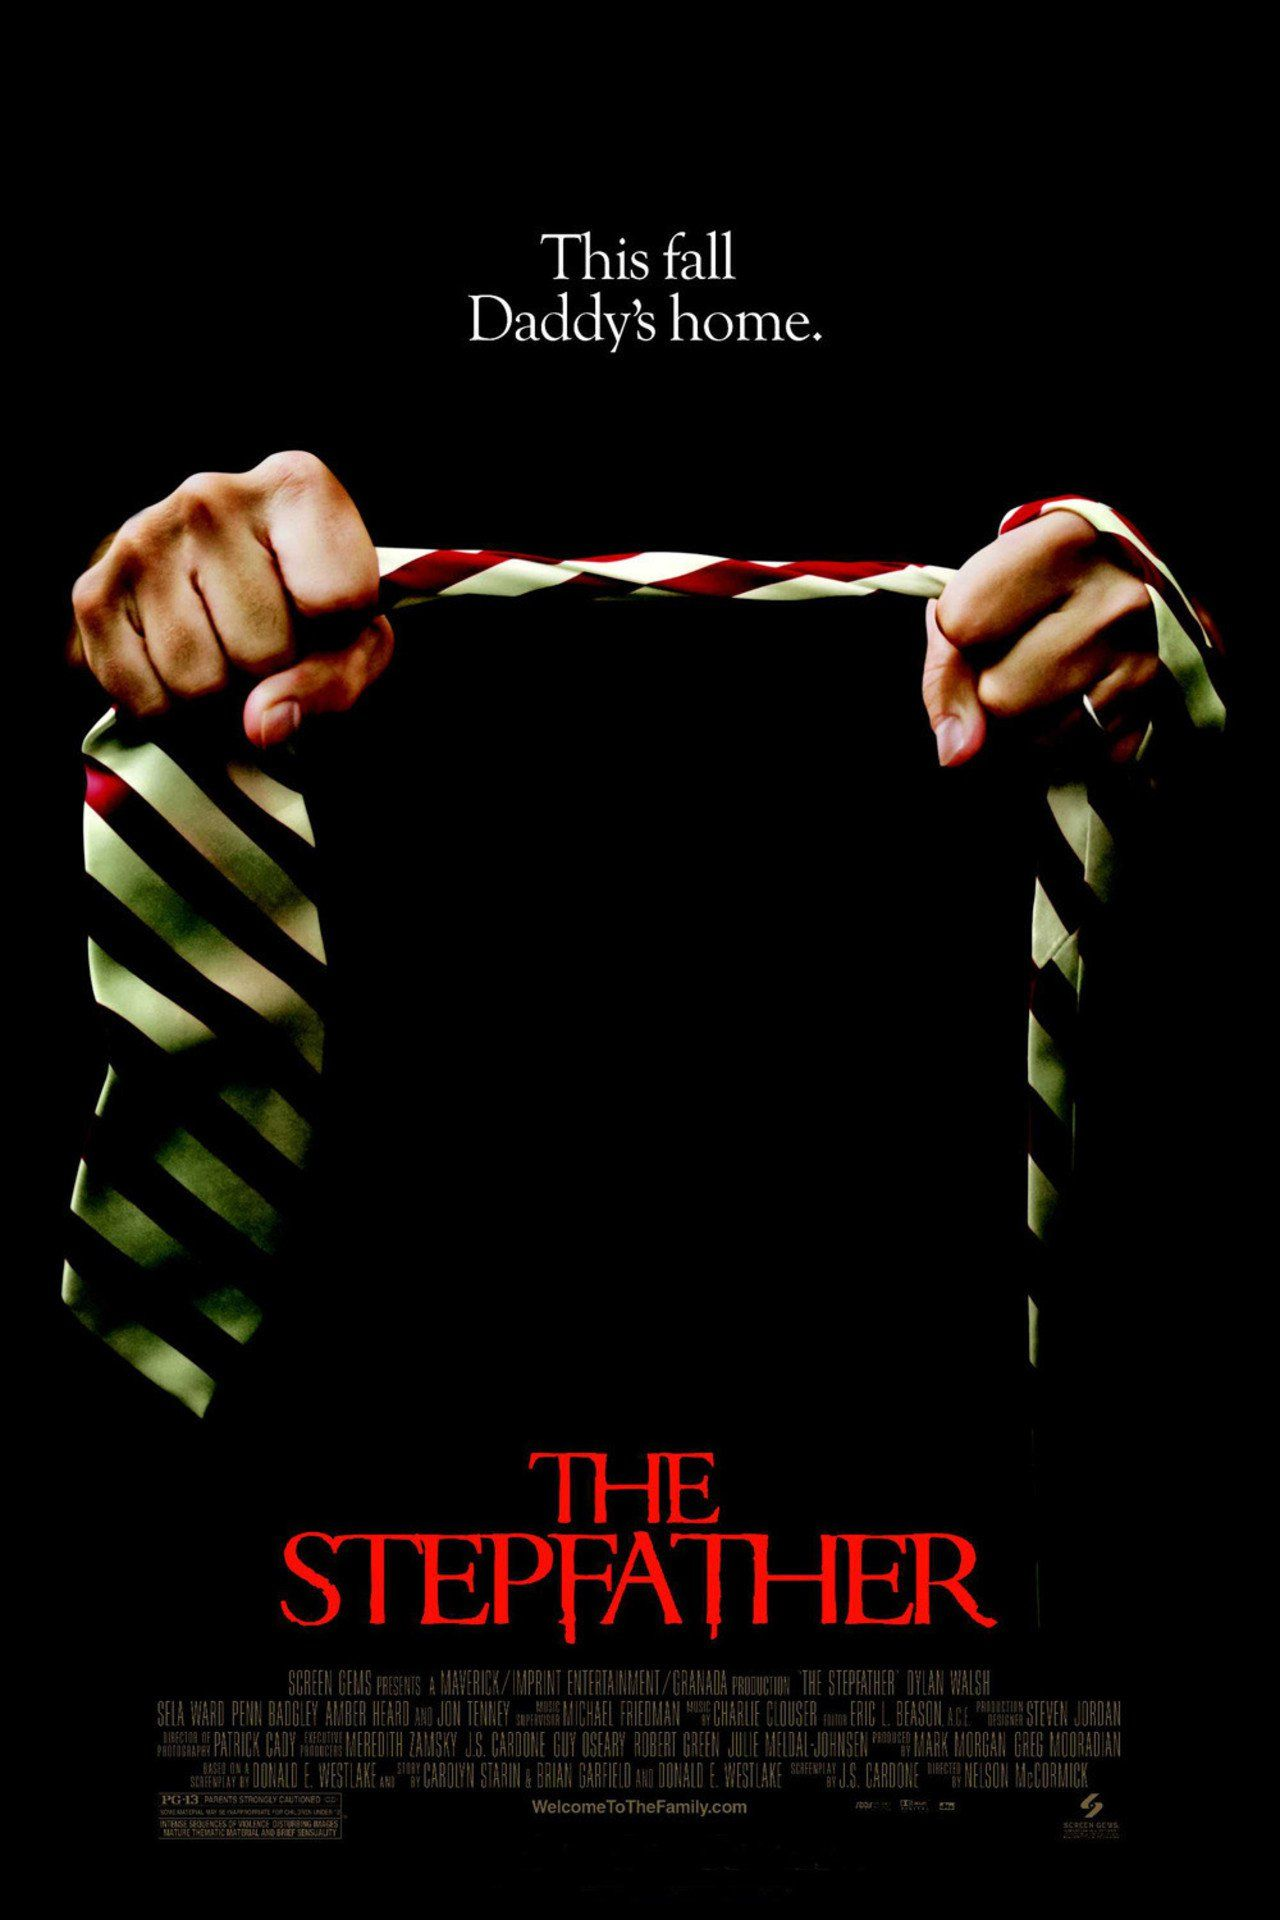 [Remake Redemption] There are Good Reasons to Fear THE STEPFATHER